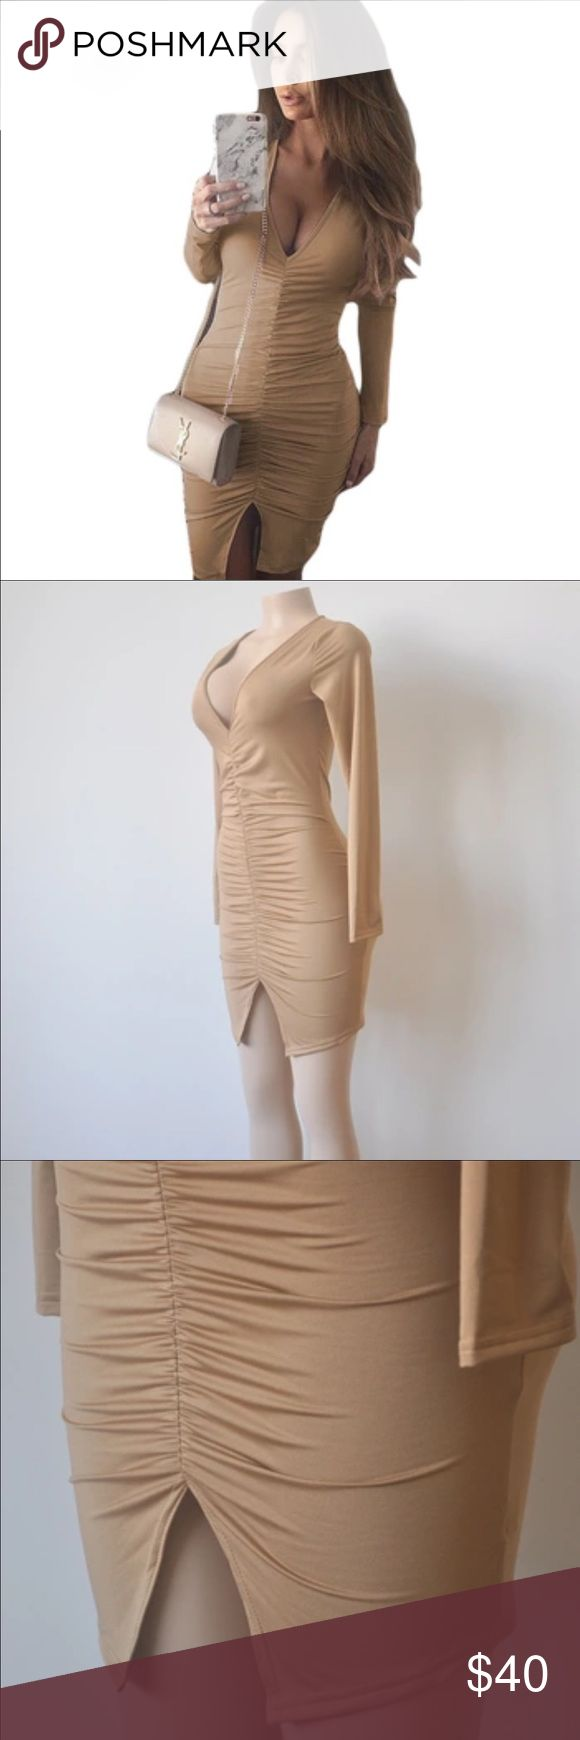 Gorgeous Camel dress Thick material , hugs curves beautifully... perfect for a night out or event Dresses Midi